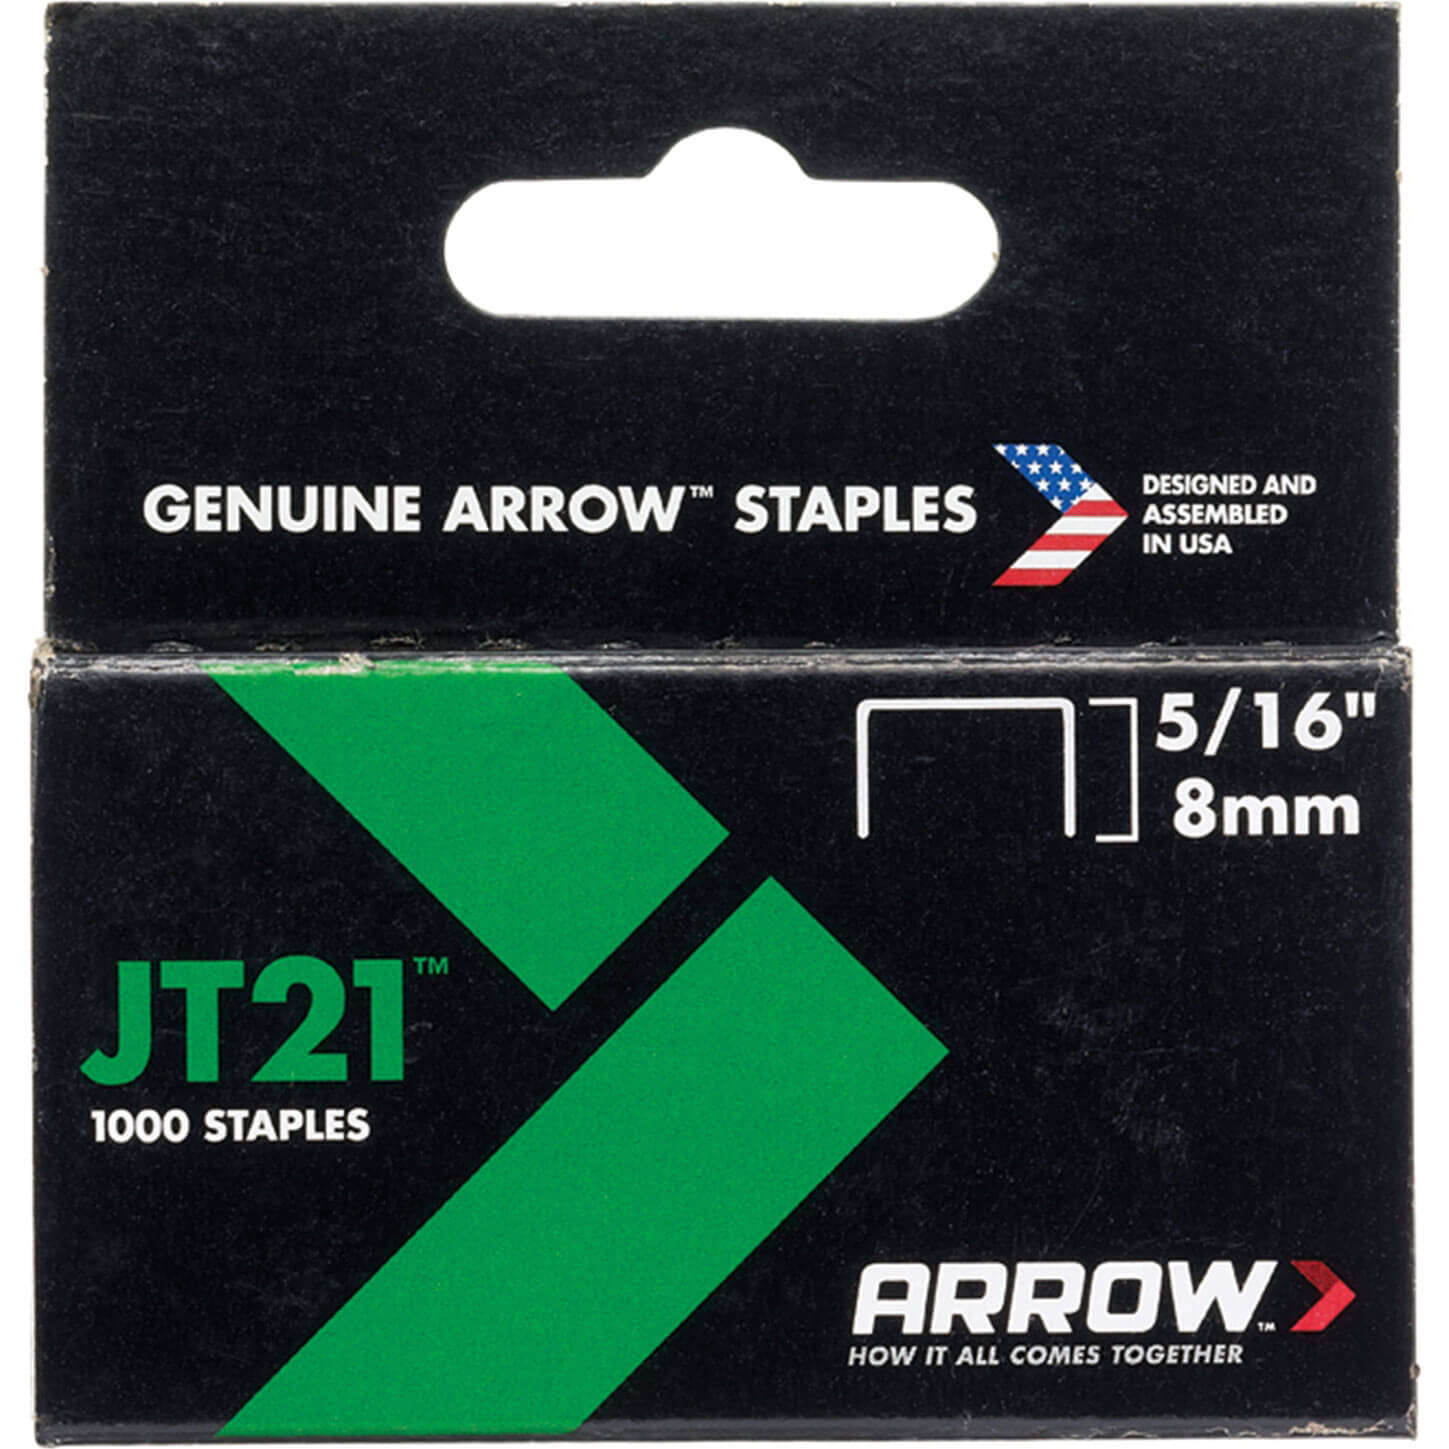 "Arrow 215 Staples 8mm / 5/16"" Pack of 1000 for JT21 & 21C"